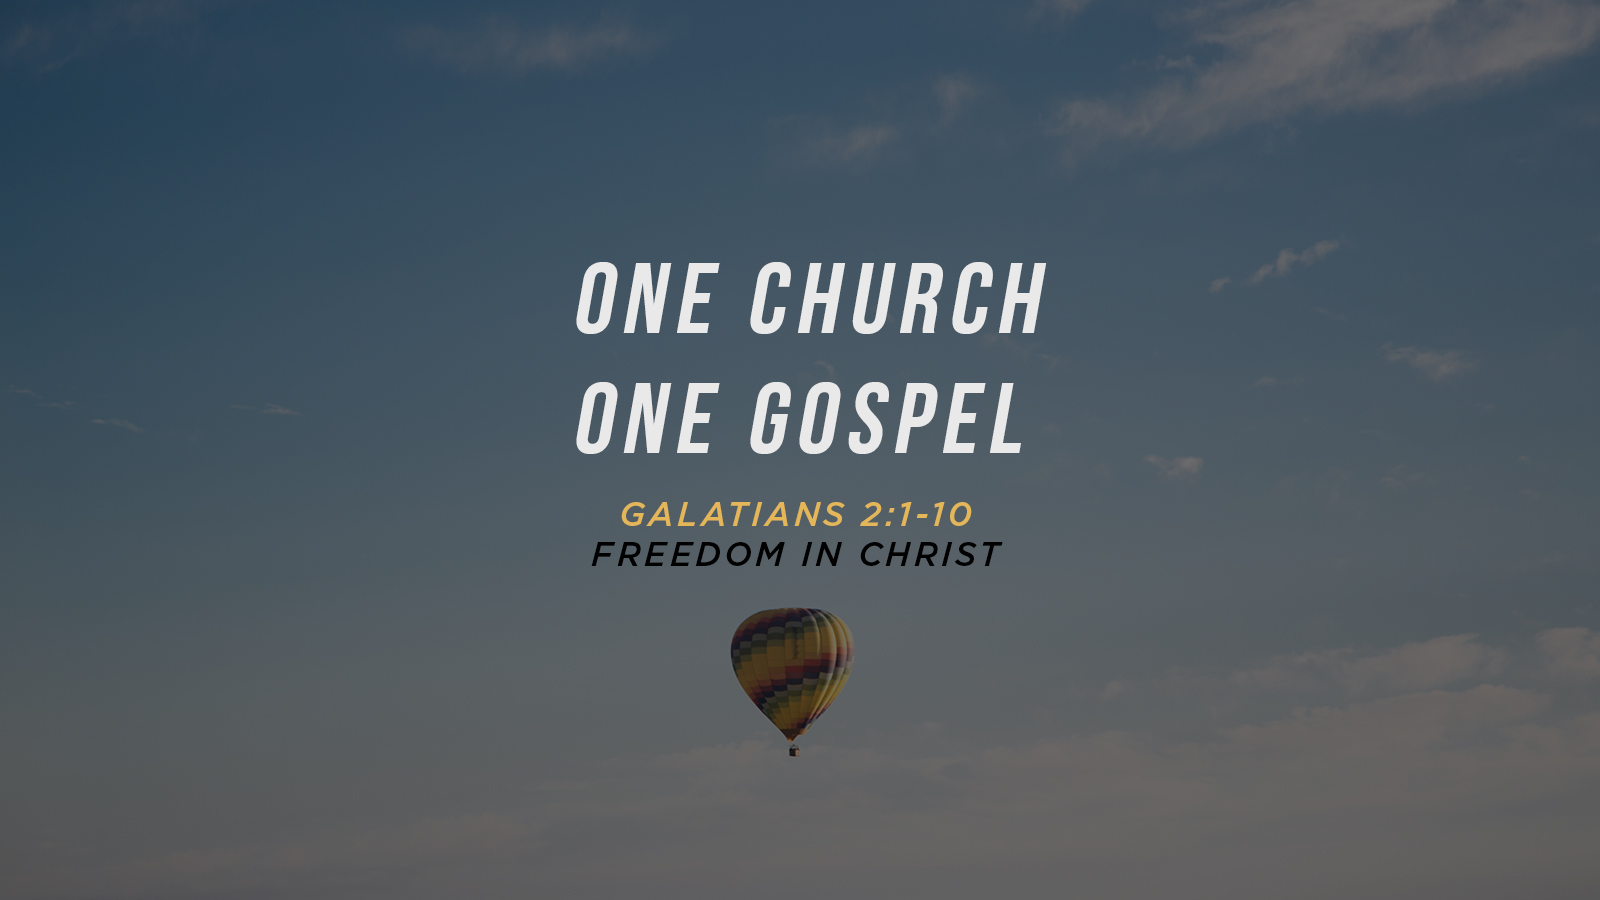 One Church One Gospel